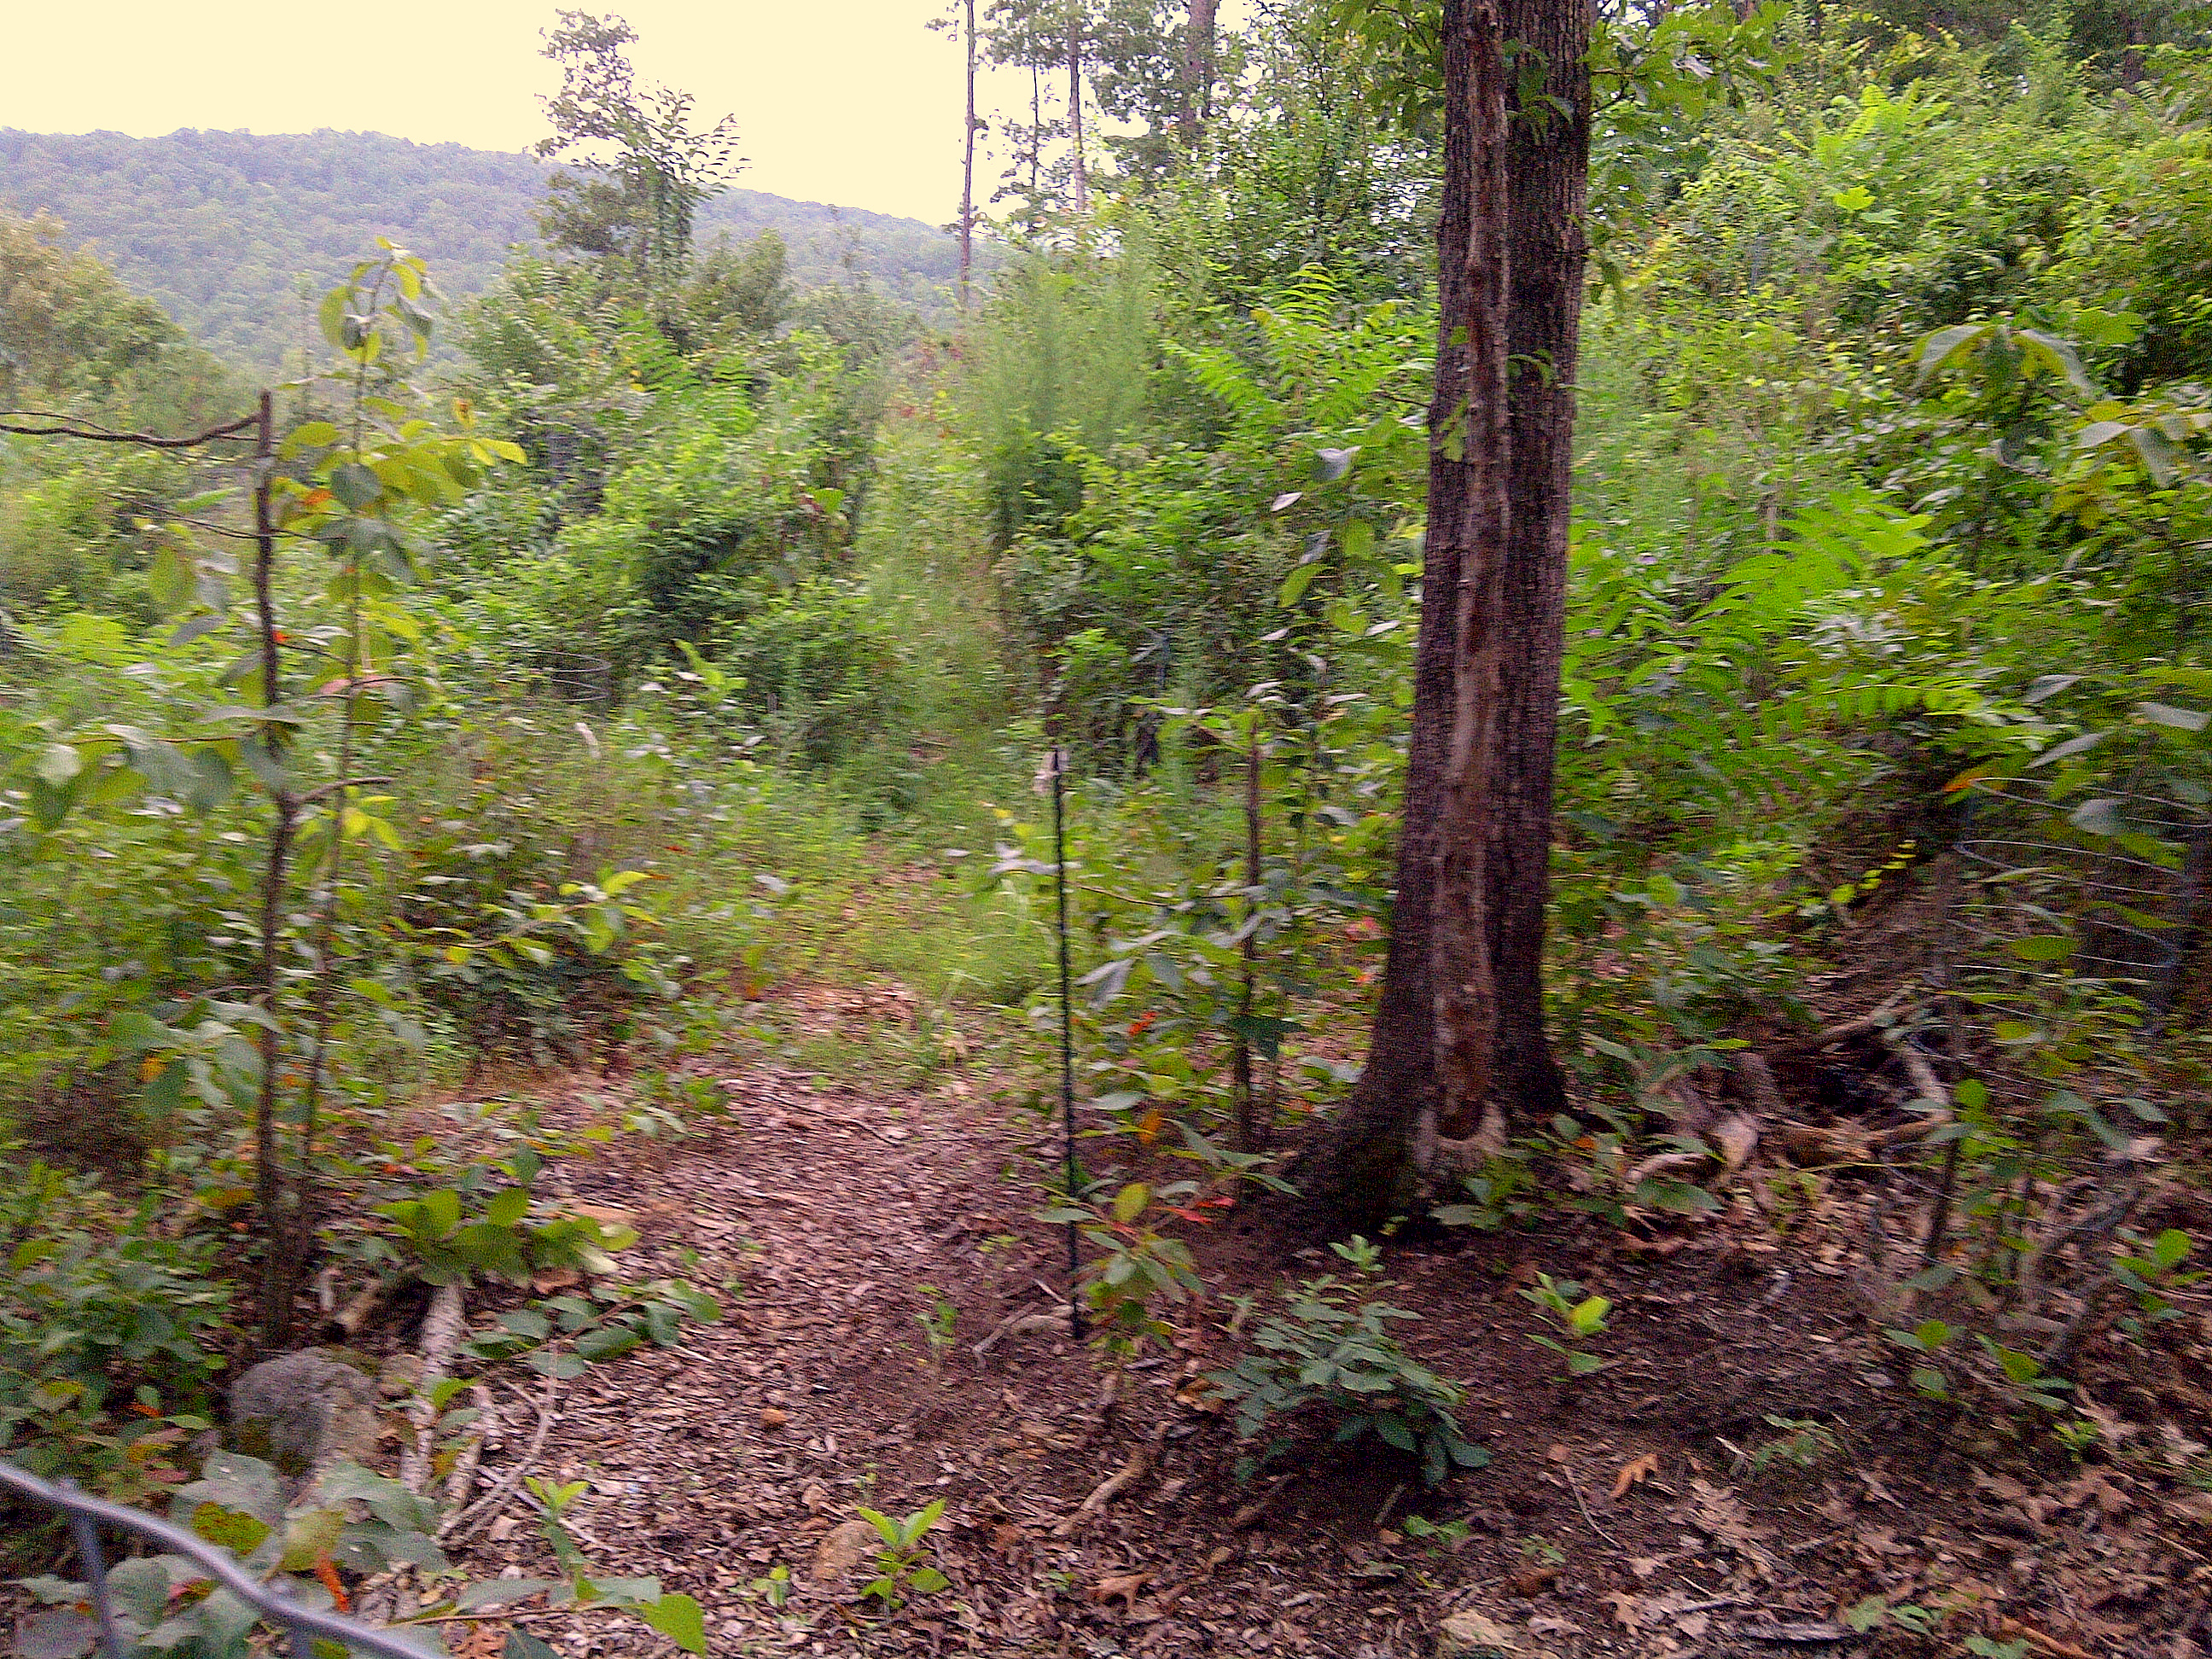 forest garden in permaculture